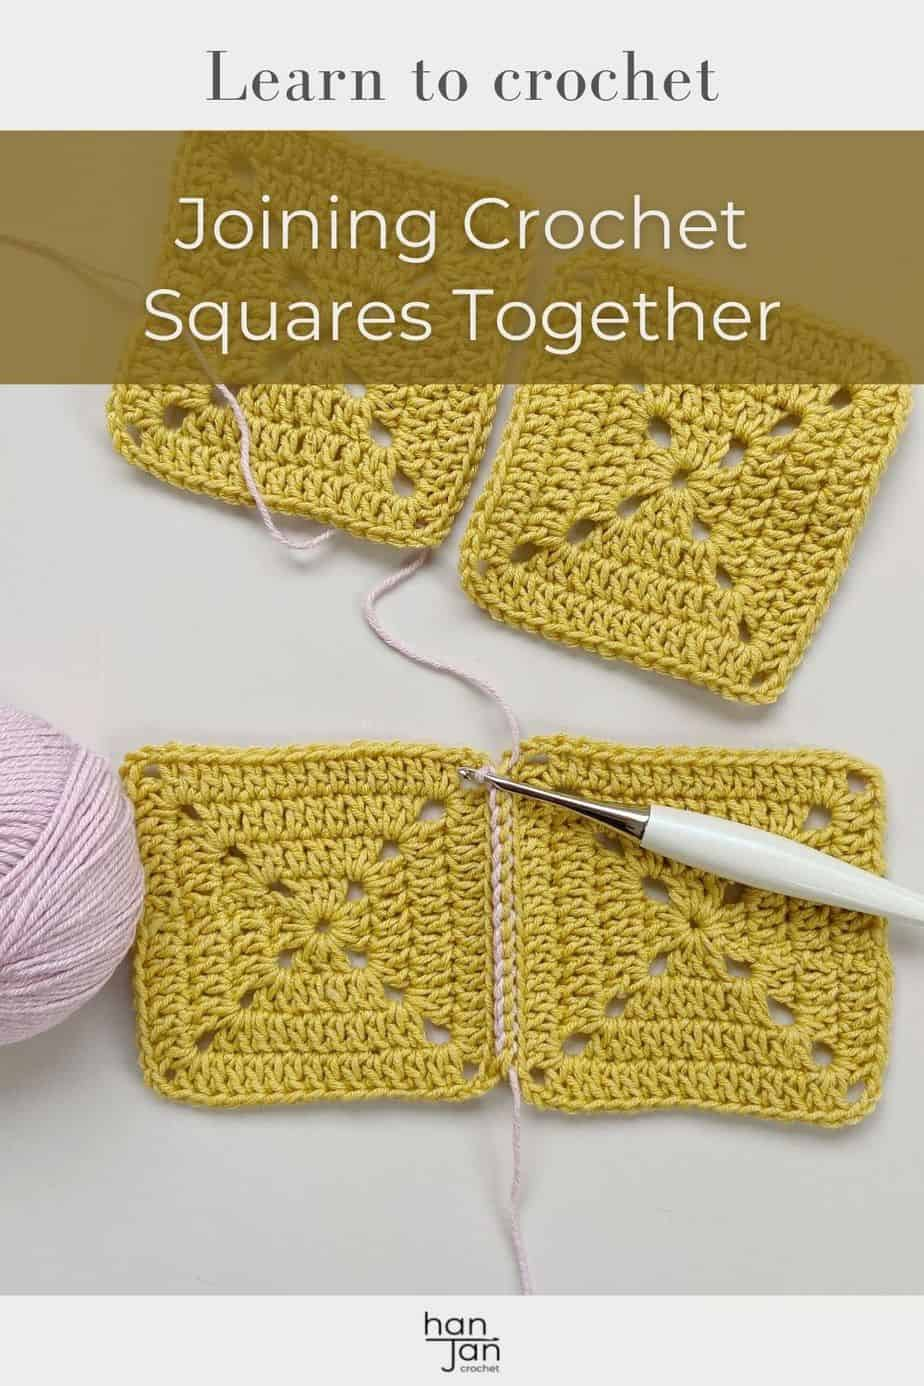 yellow and pink yarn with Furls crochet hook showing crochet slip stitch join of motifs